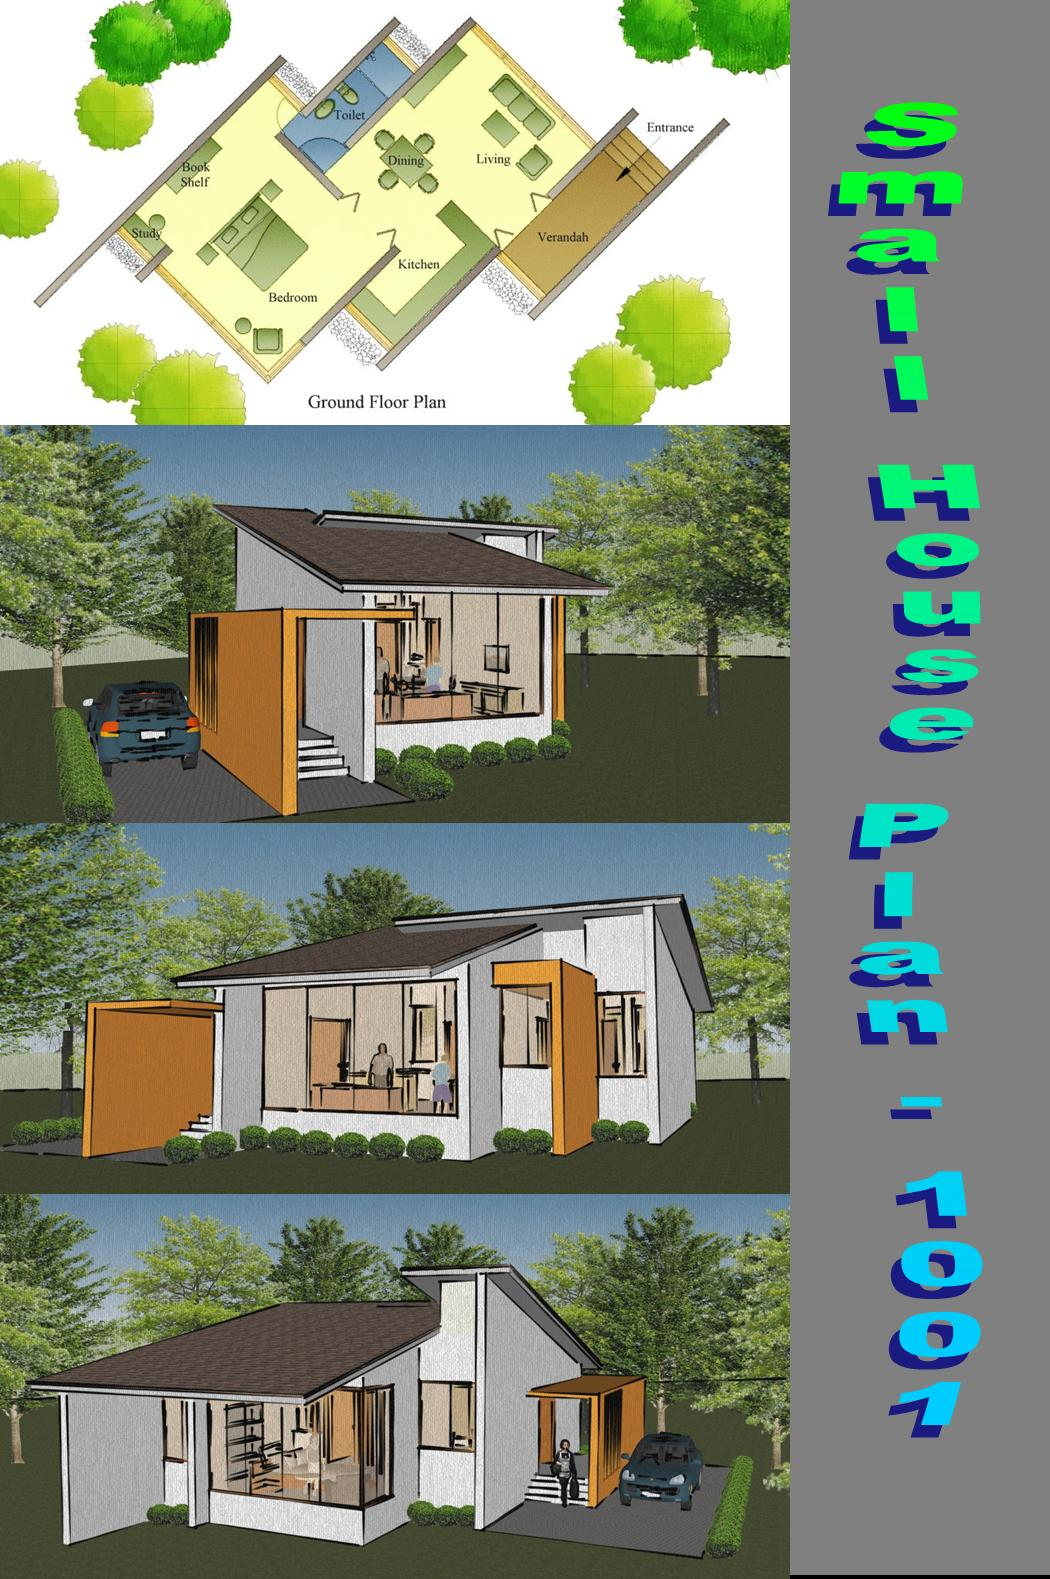 5 Best Small Home Plans From Homeplansindia